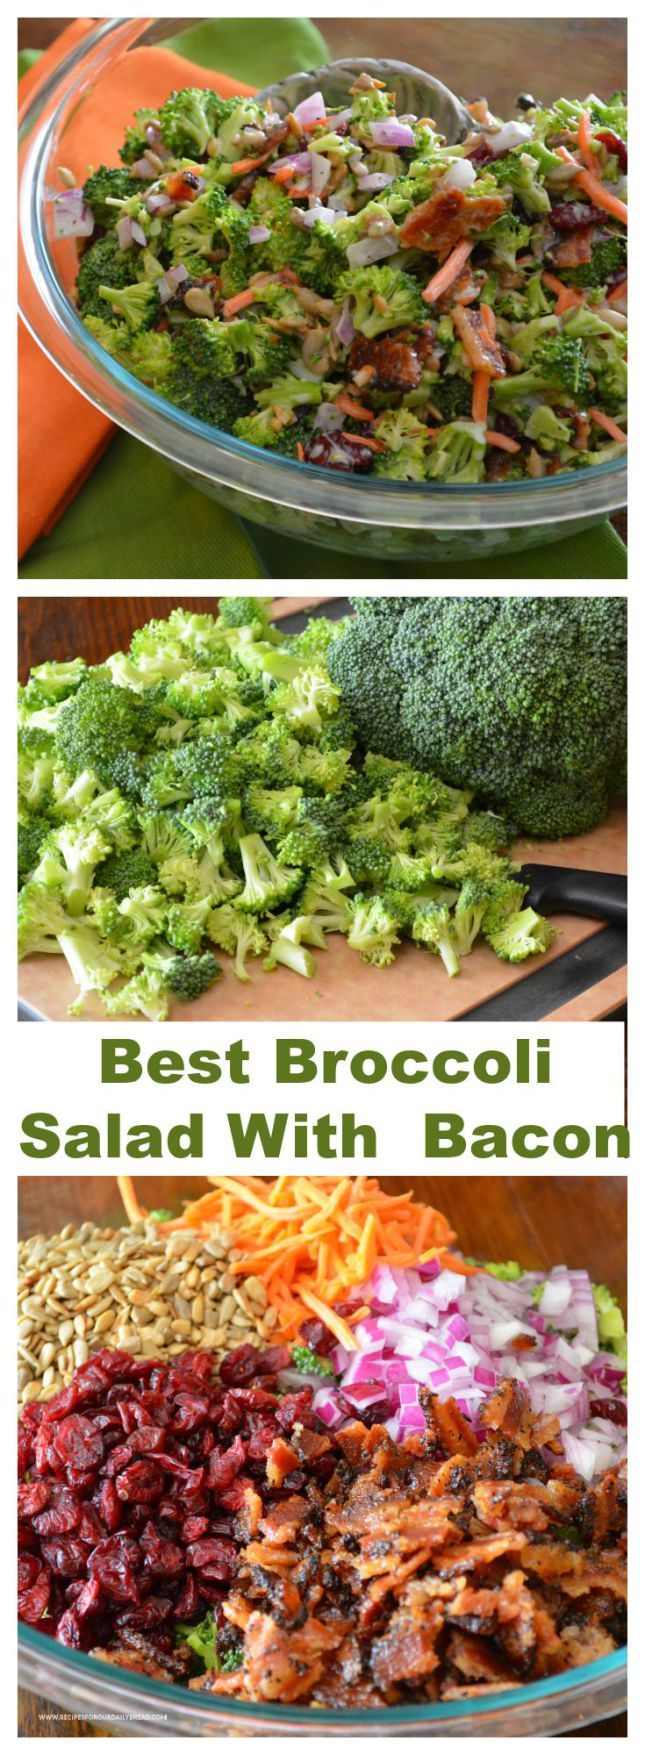 Broccoli Salad with Bacon Recipe -Recipes For Our Daily...